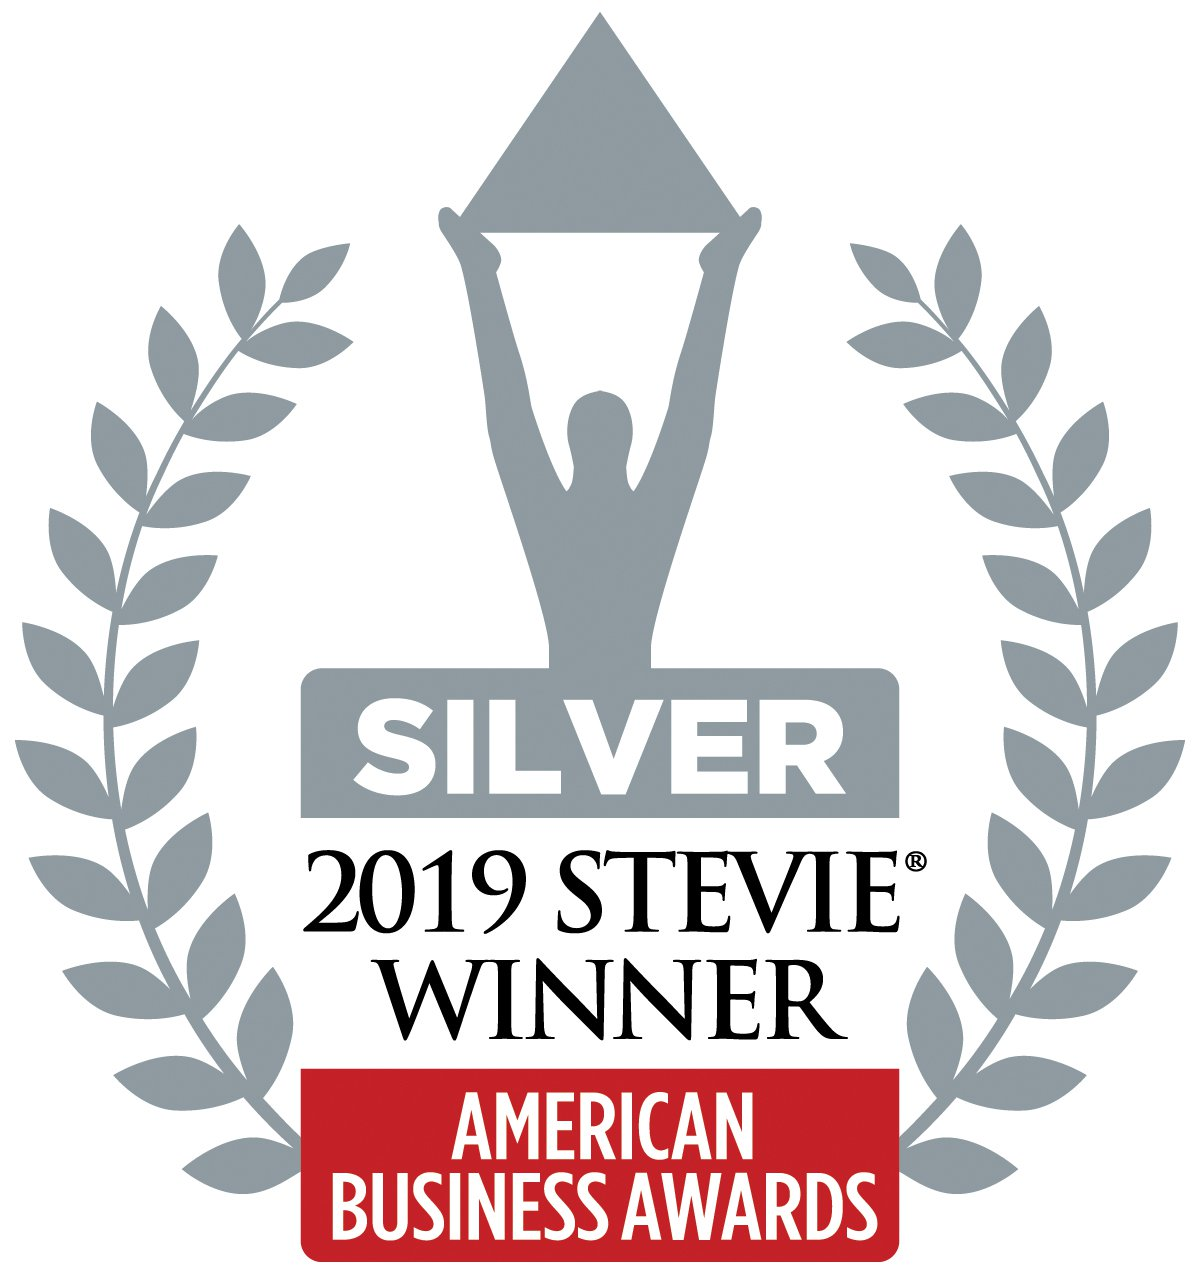 The 2019 American Business Awards